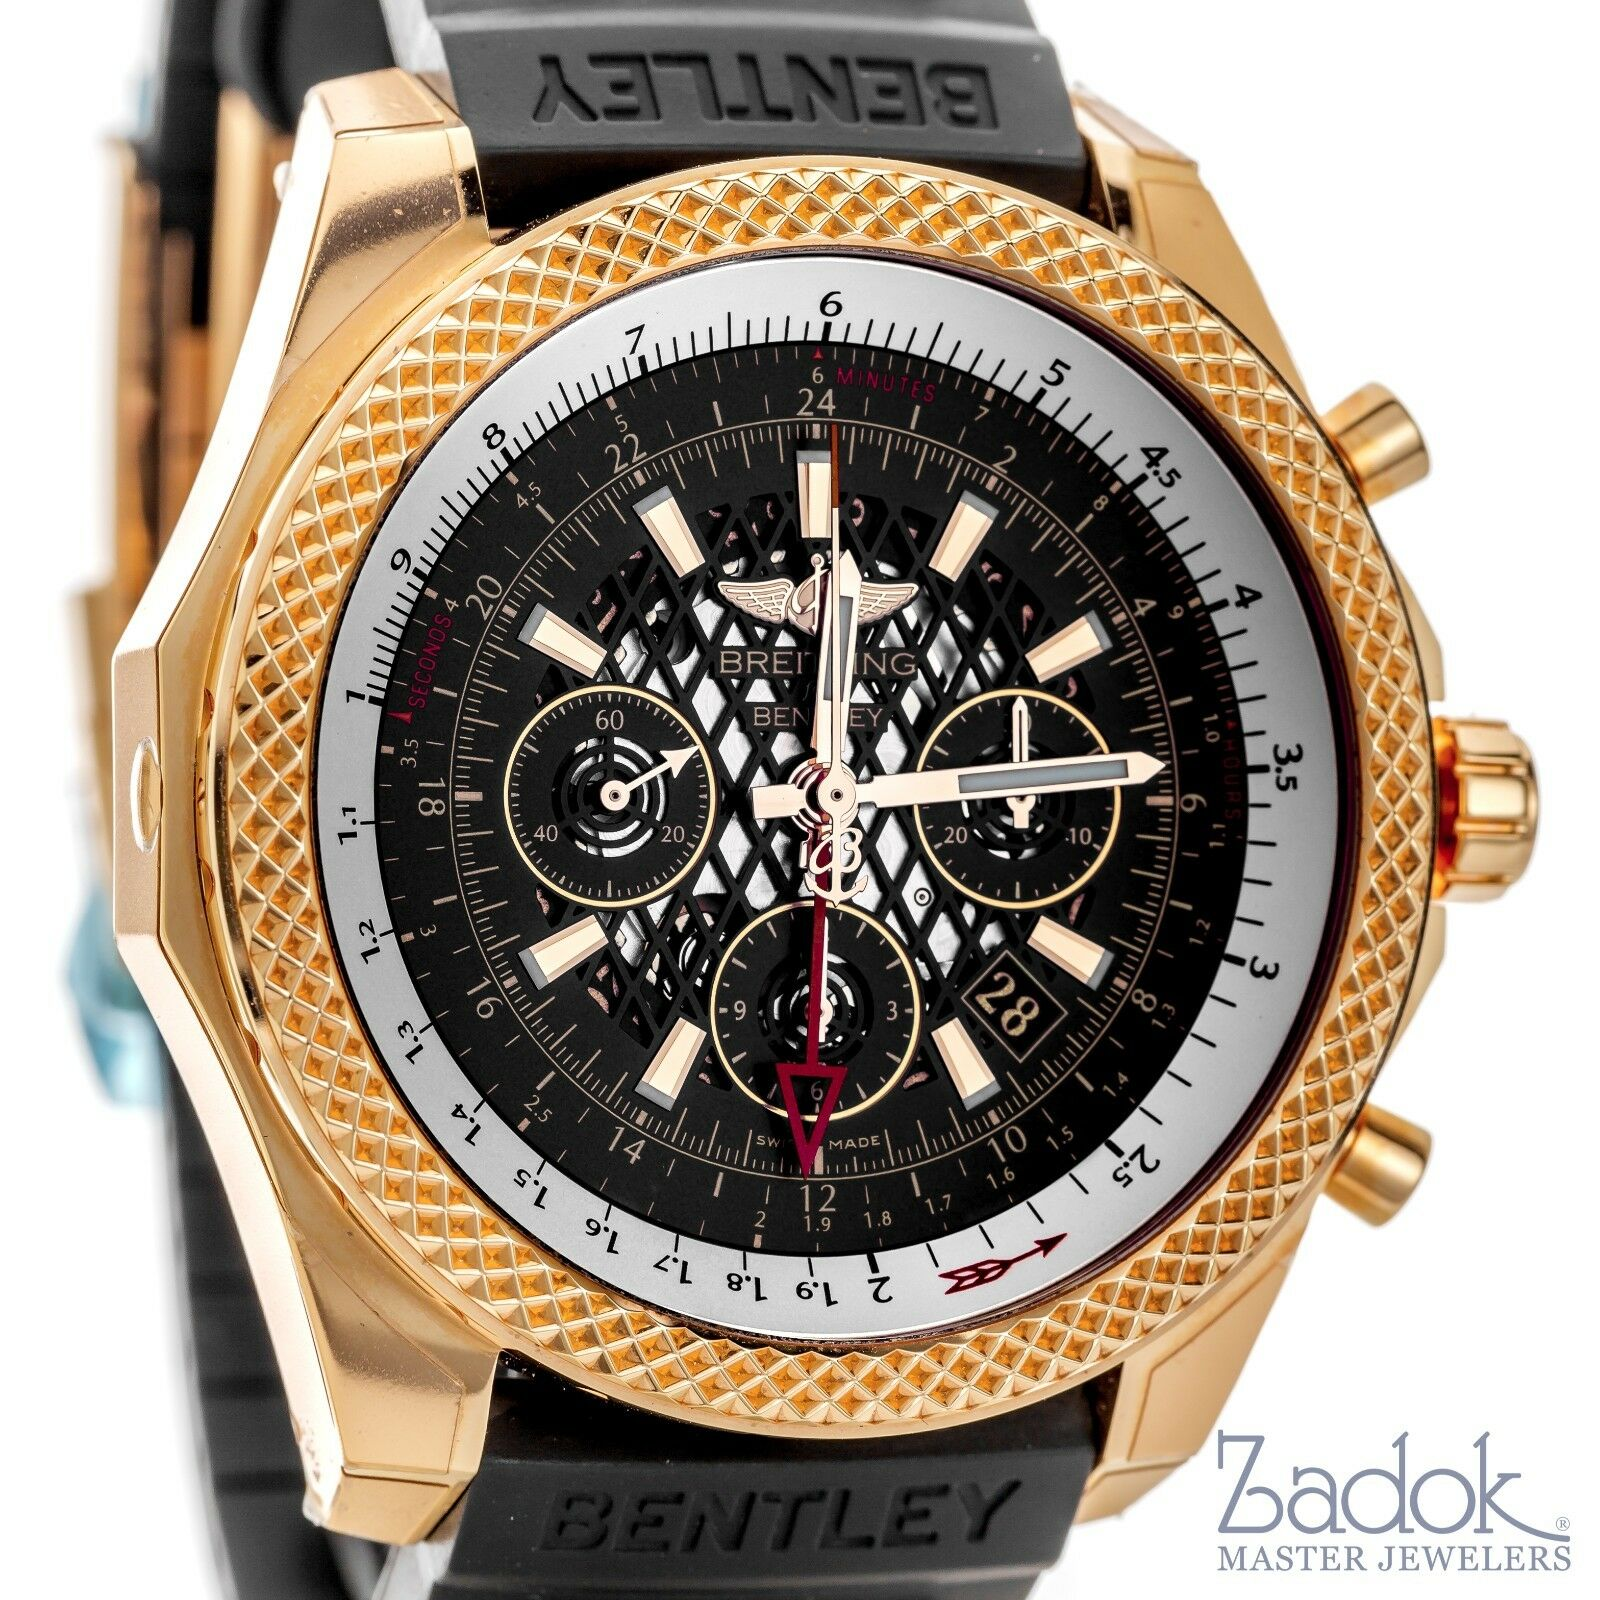 $31045.00 - Breitling for Bentley B04 GMT 18k Rose Gold Chronograph Watch RB043112 Black